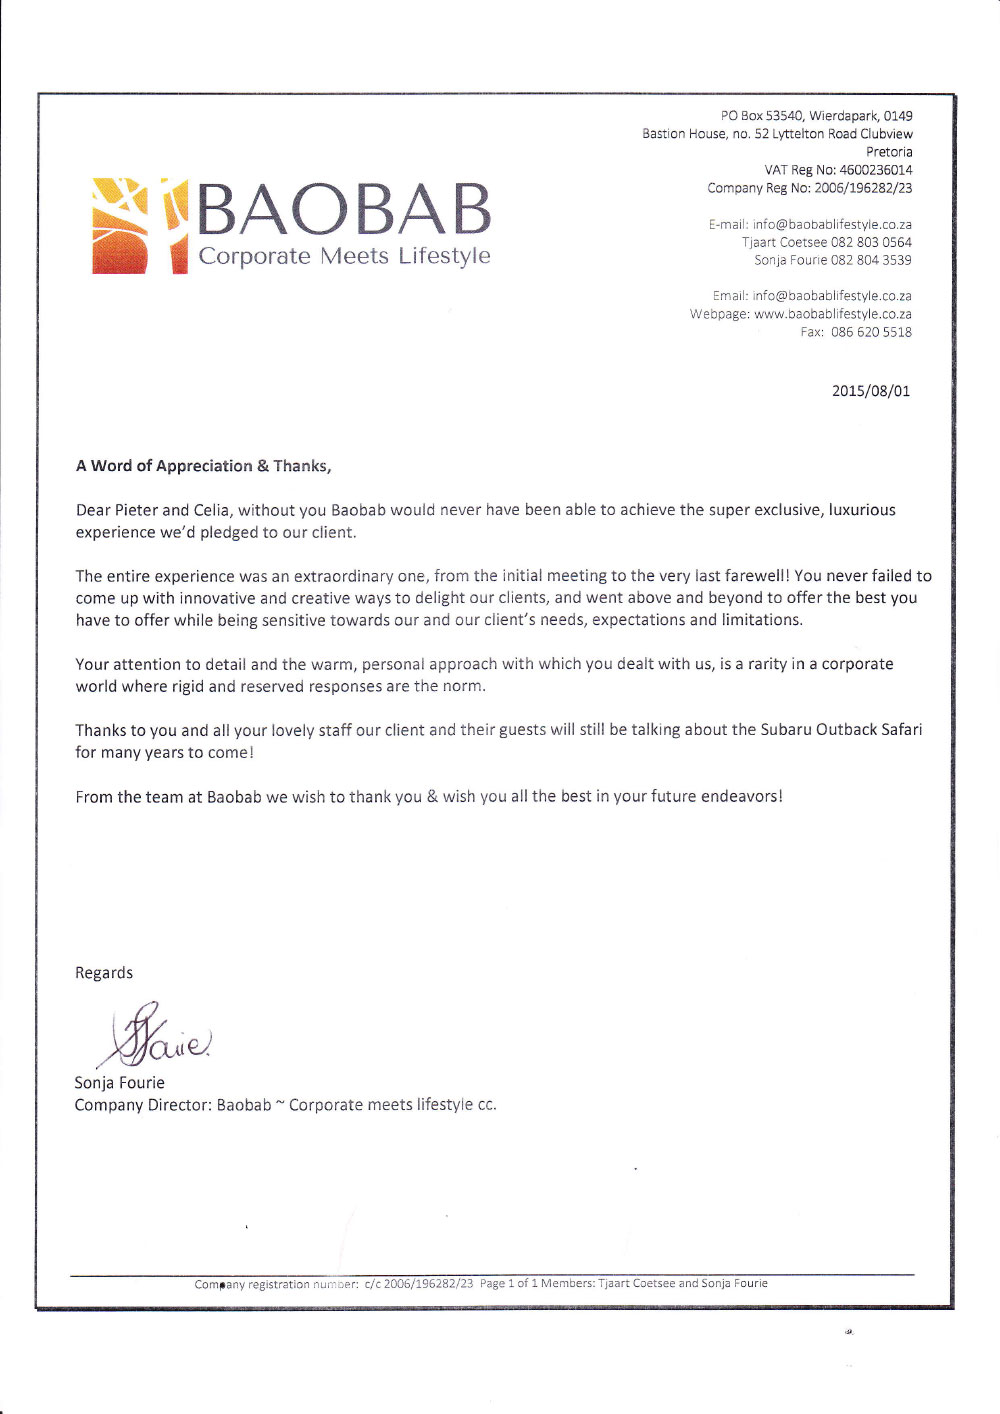 Commendation Letter  Subaru  Haywards Luxury African Safaris